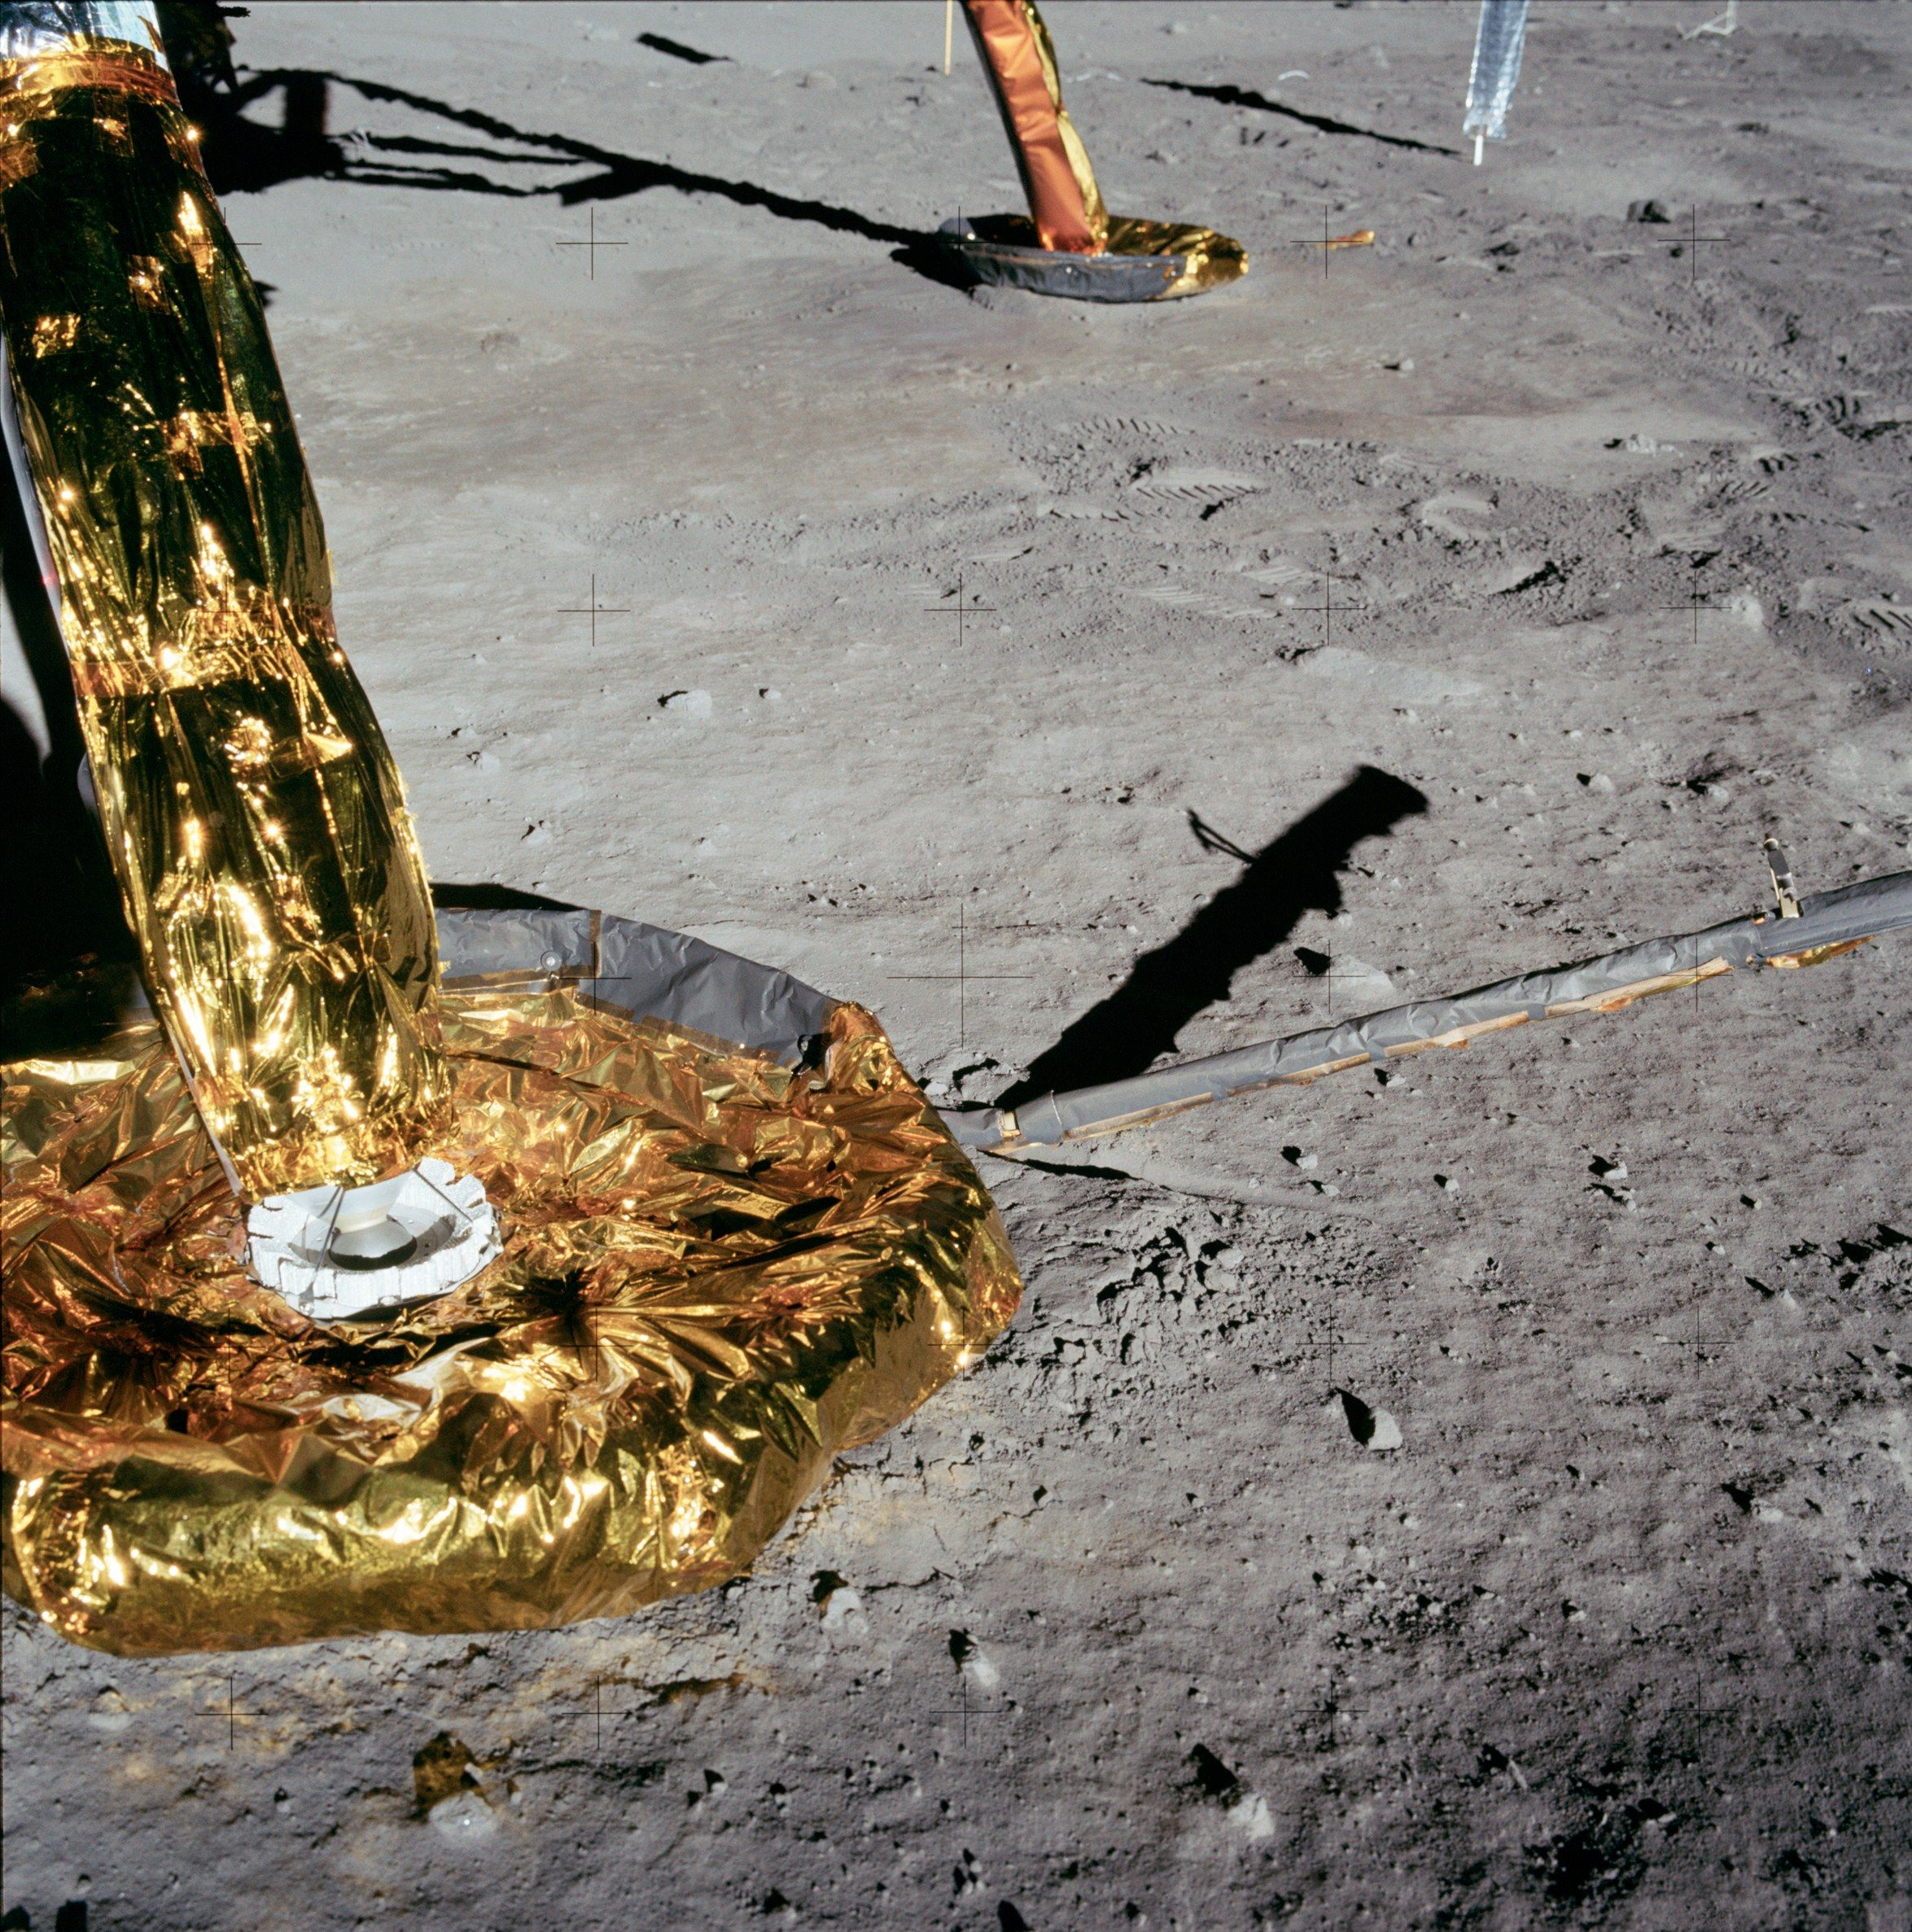 Apollo foot from outer and inner space Apollo 11 moon